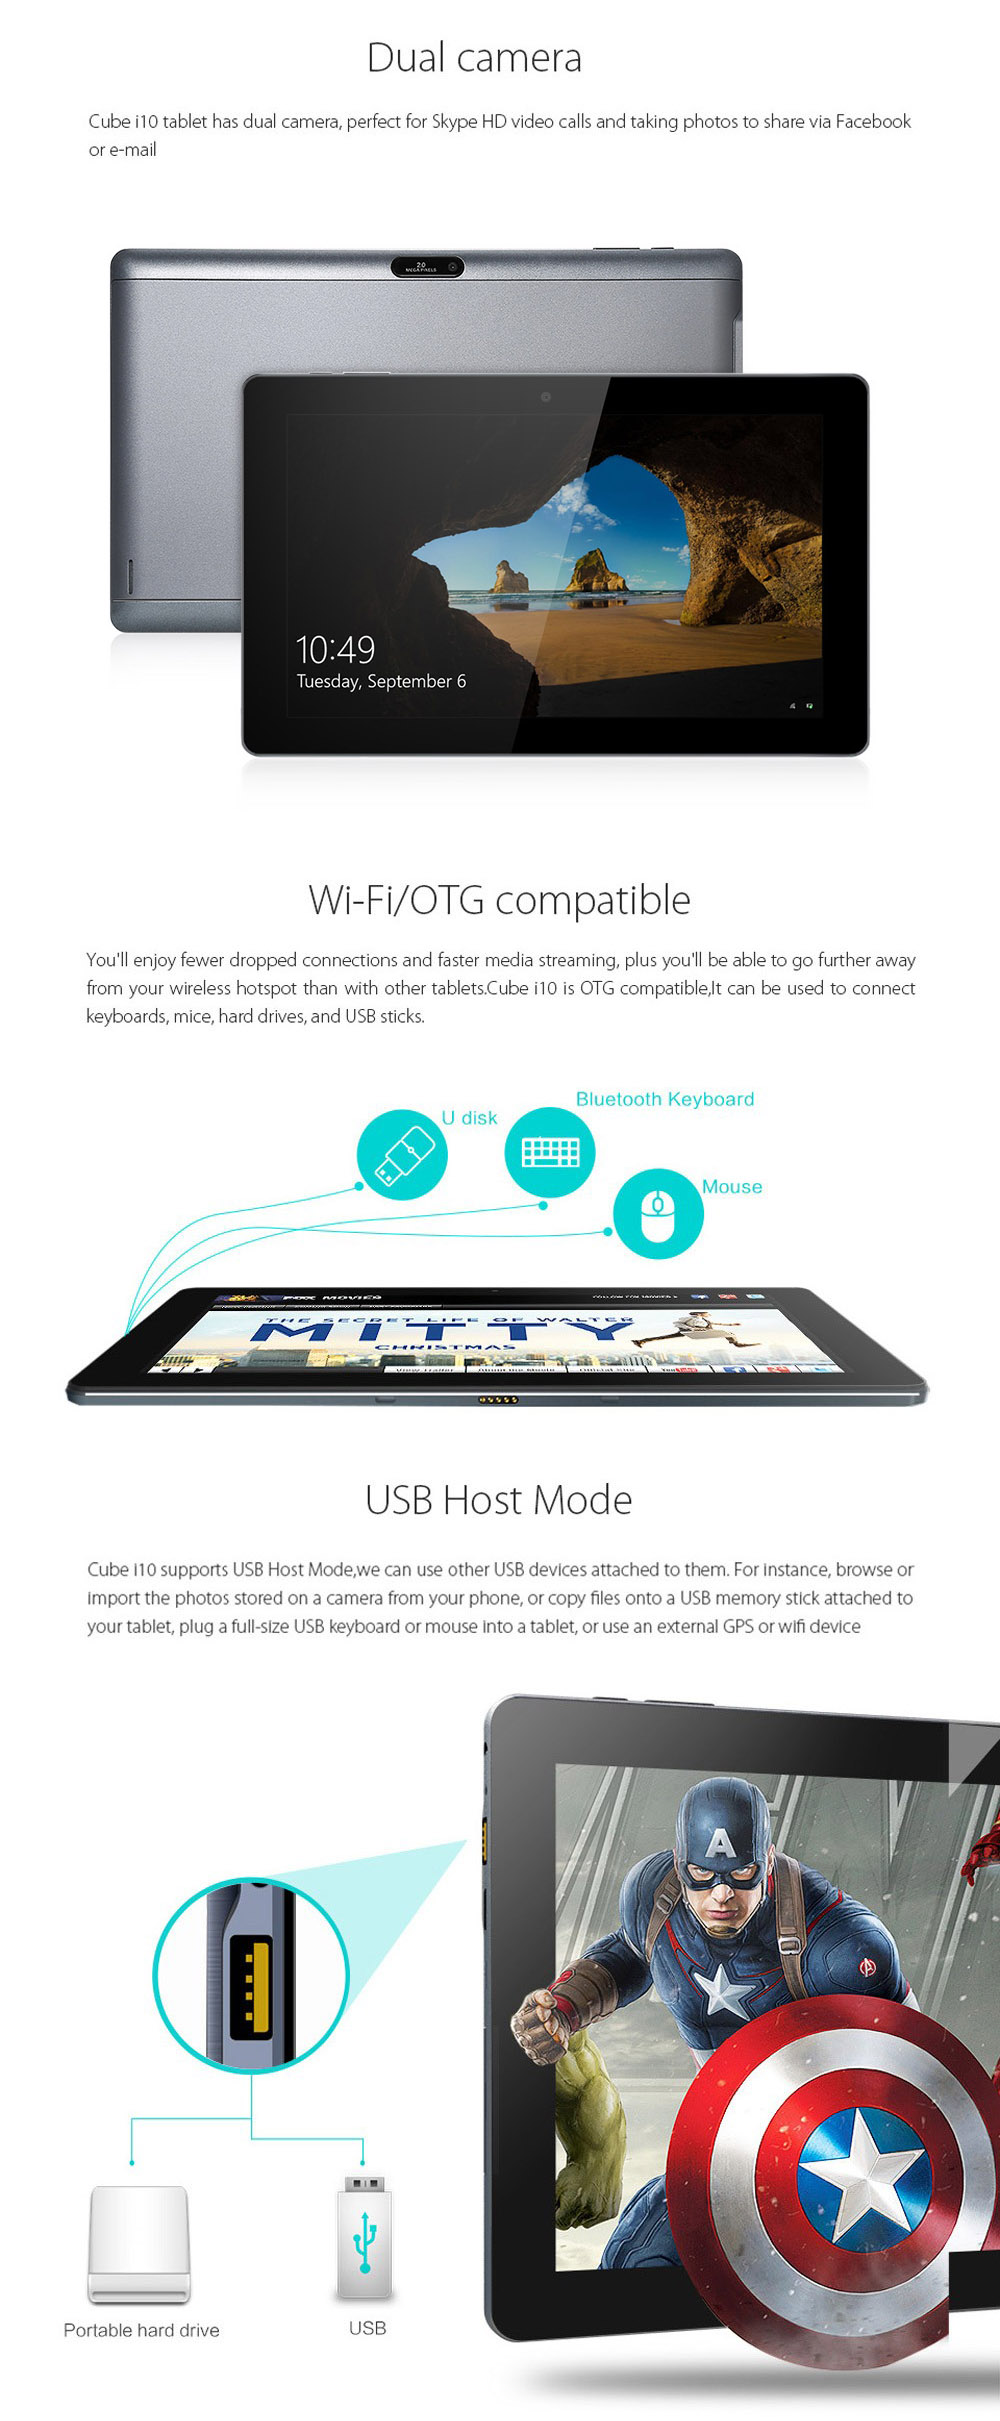 10.6 inch Cube I10 Android4.4 + Win10 Ultrabook Tablet PC Intel Z3735F Quad Core 1.8GHz 1366 X 768 IPS Screen 2GB RAM 32GB ROM WiFi HDMI OTG Functions